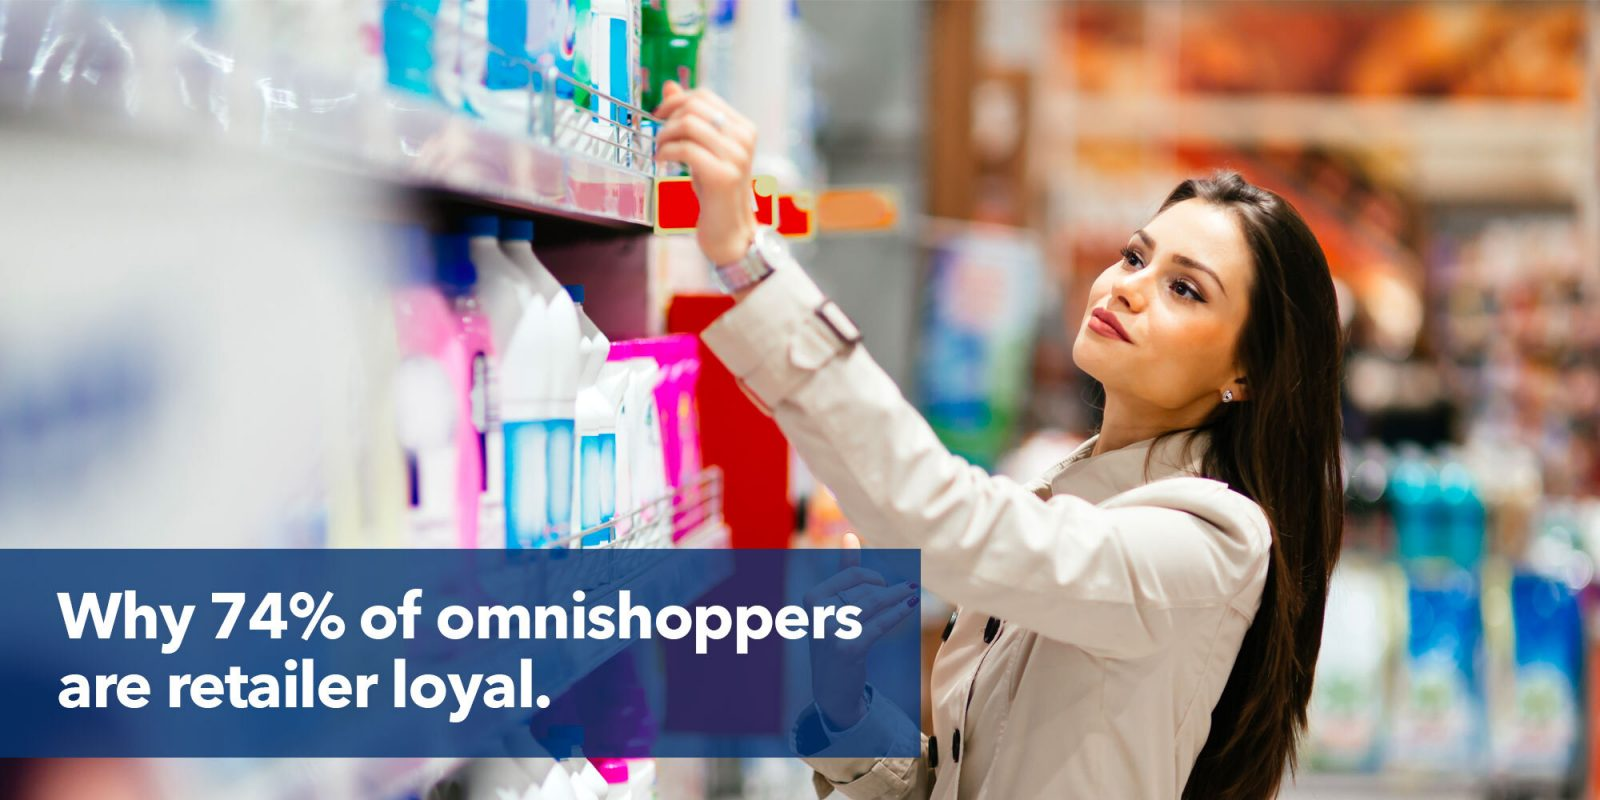 Why 74% of omnishoppers are retailer loyal.